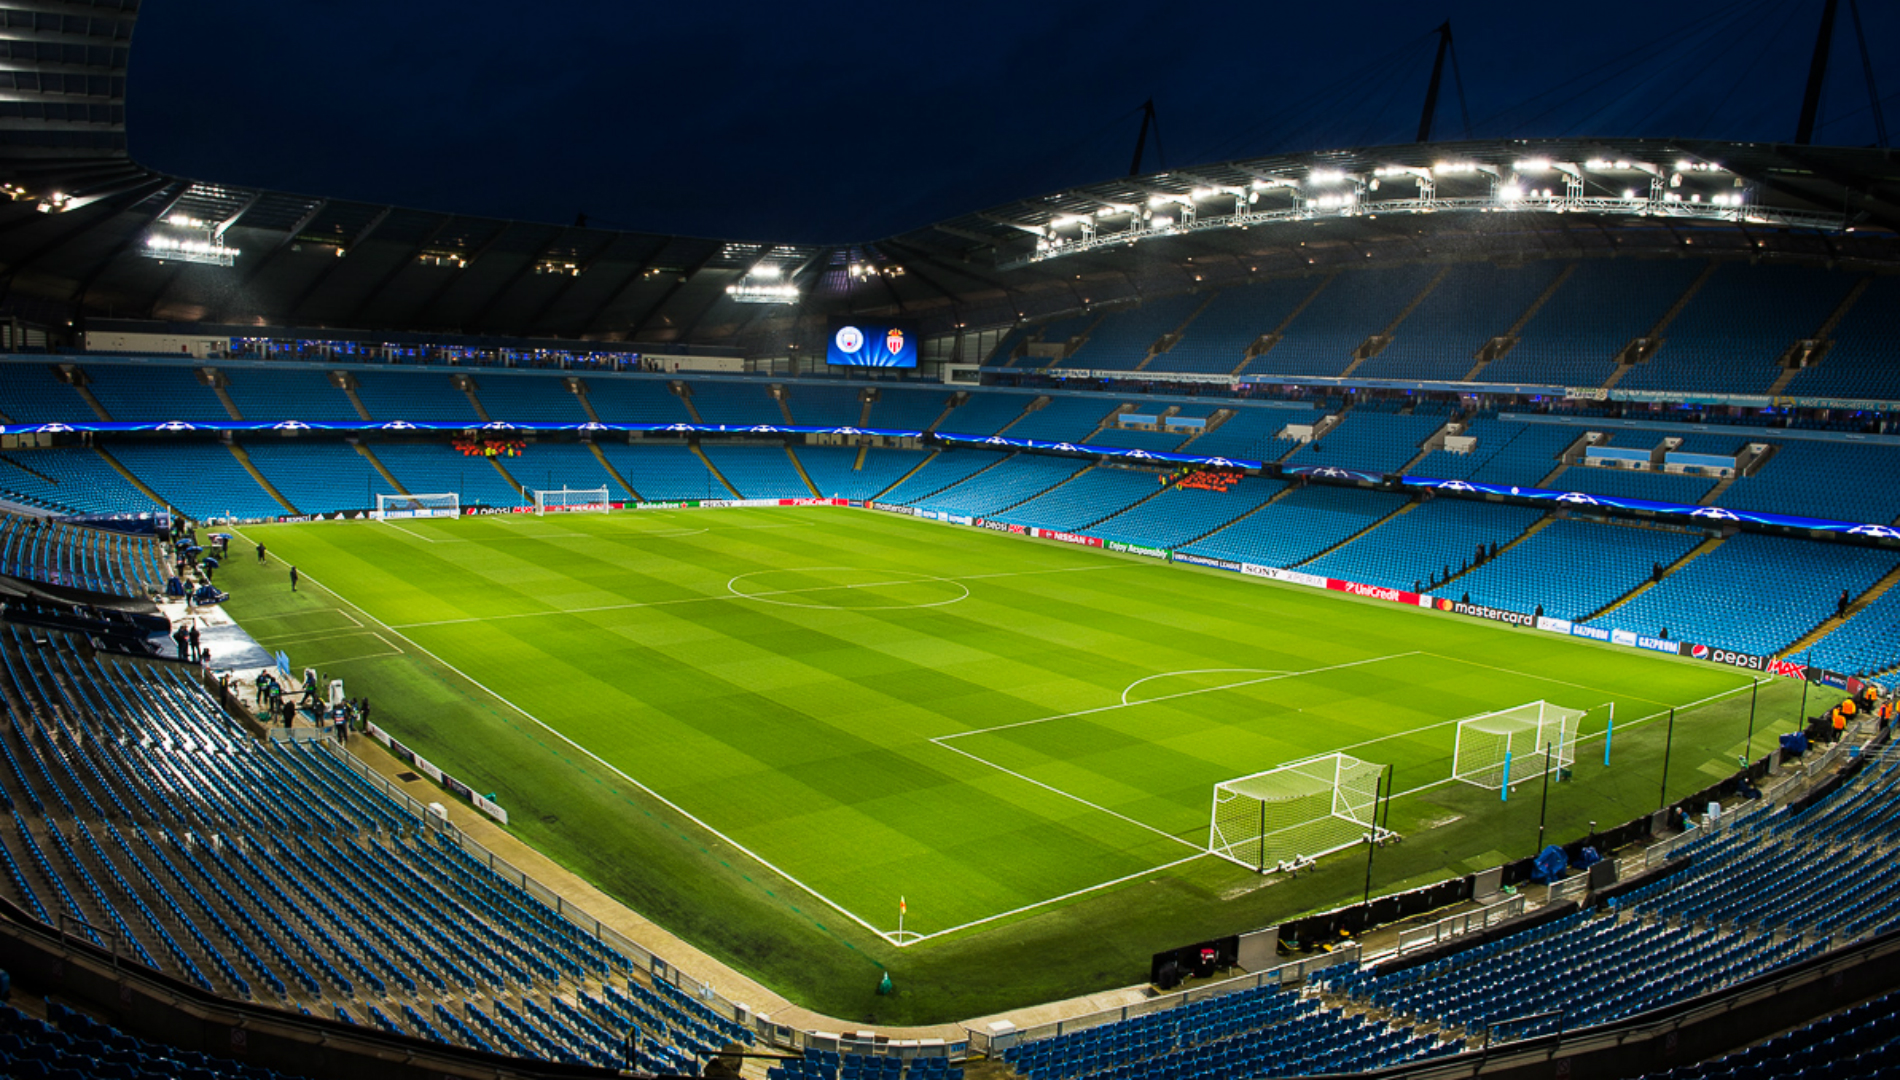 The Etihad Stadium shortly before the Champions League thriller between Manchester City and Monaco